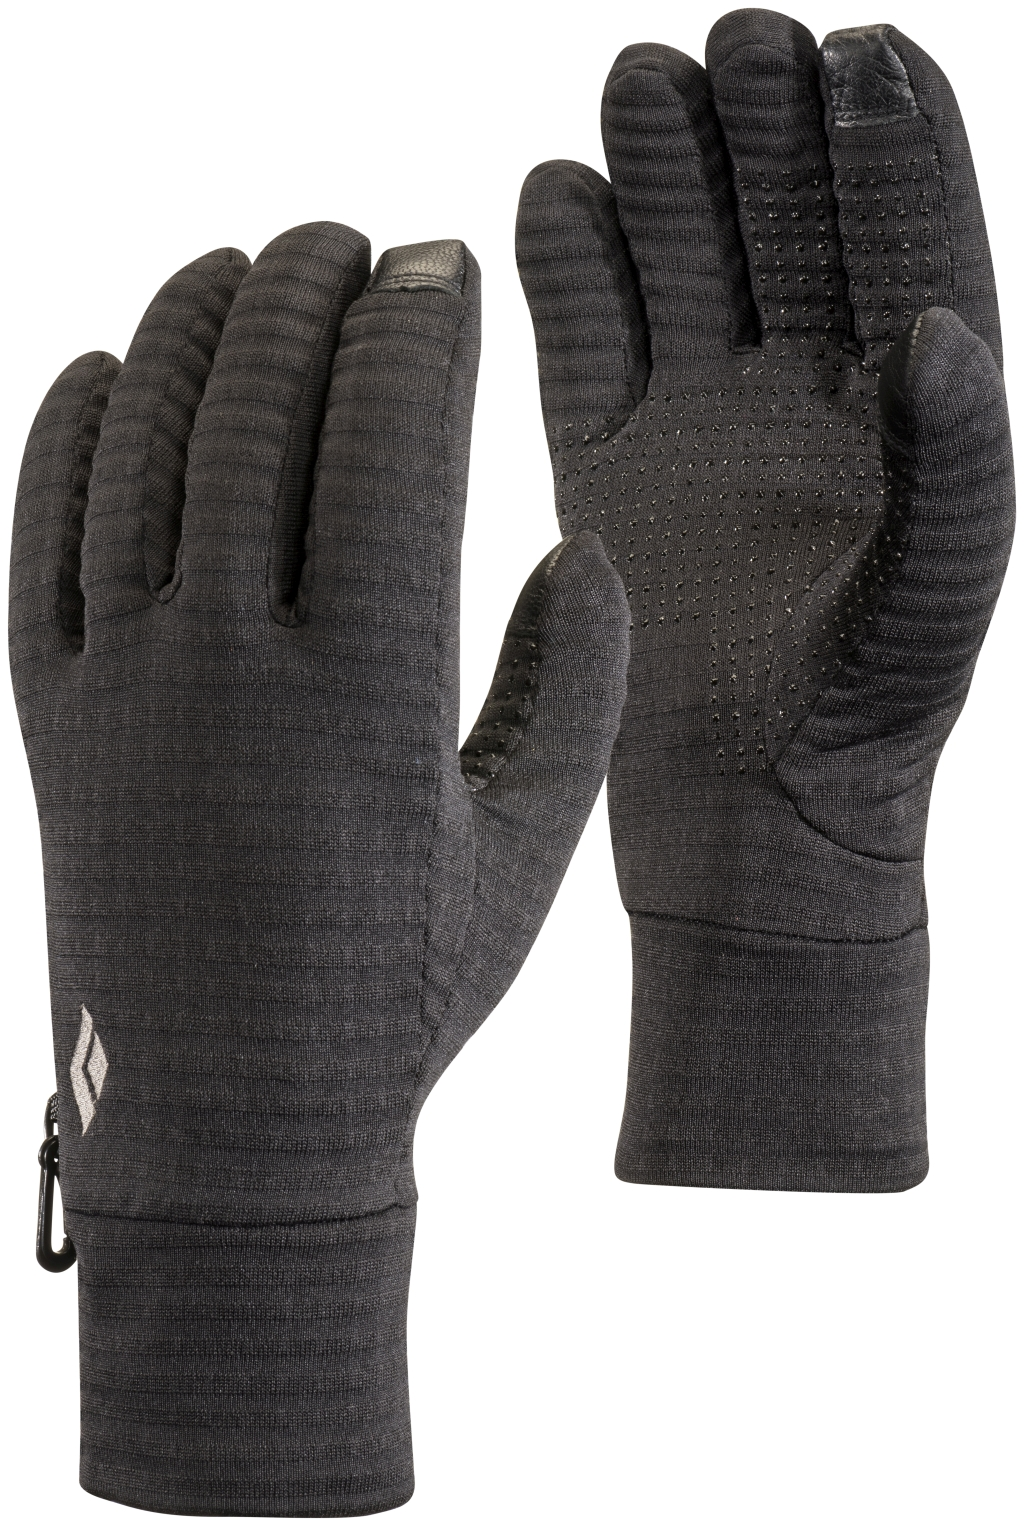 Black Diamond Lightweight Gridtech Fleece Gloves Black-30